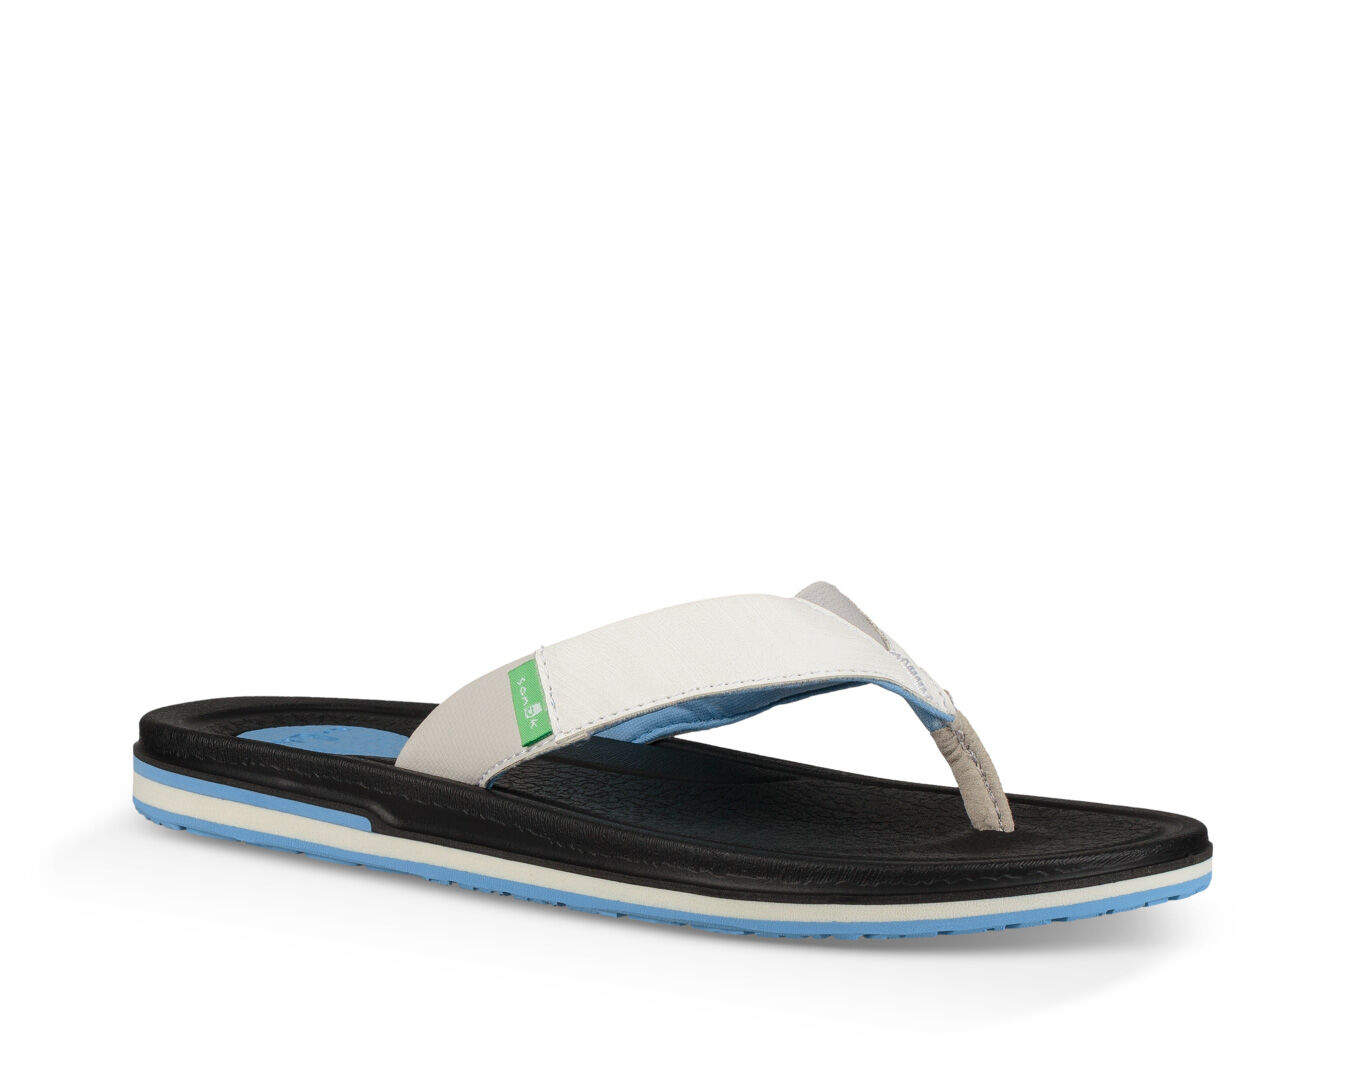 Spirited Mens Flip Flops Clothes, Shoes & Accessories Sandals & Beach Shoes